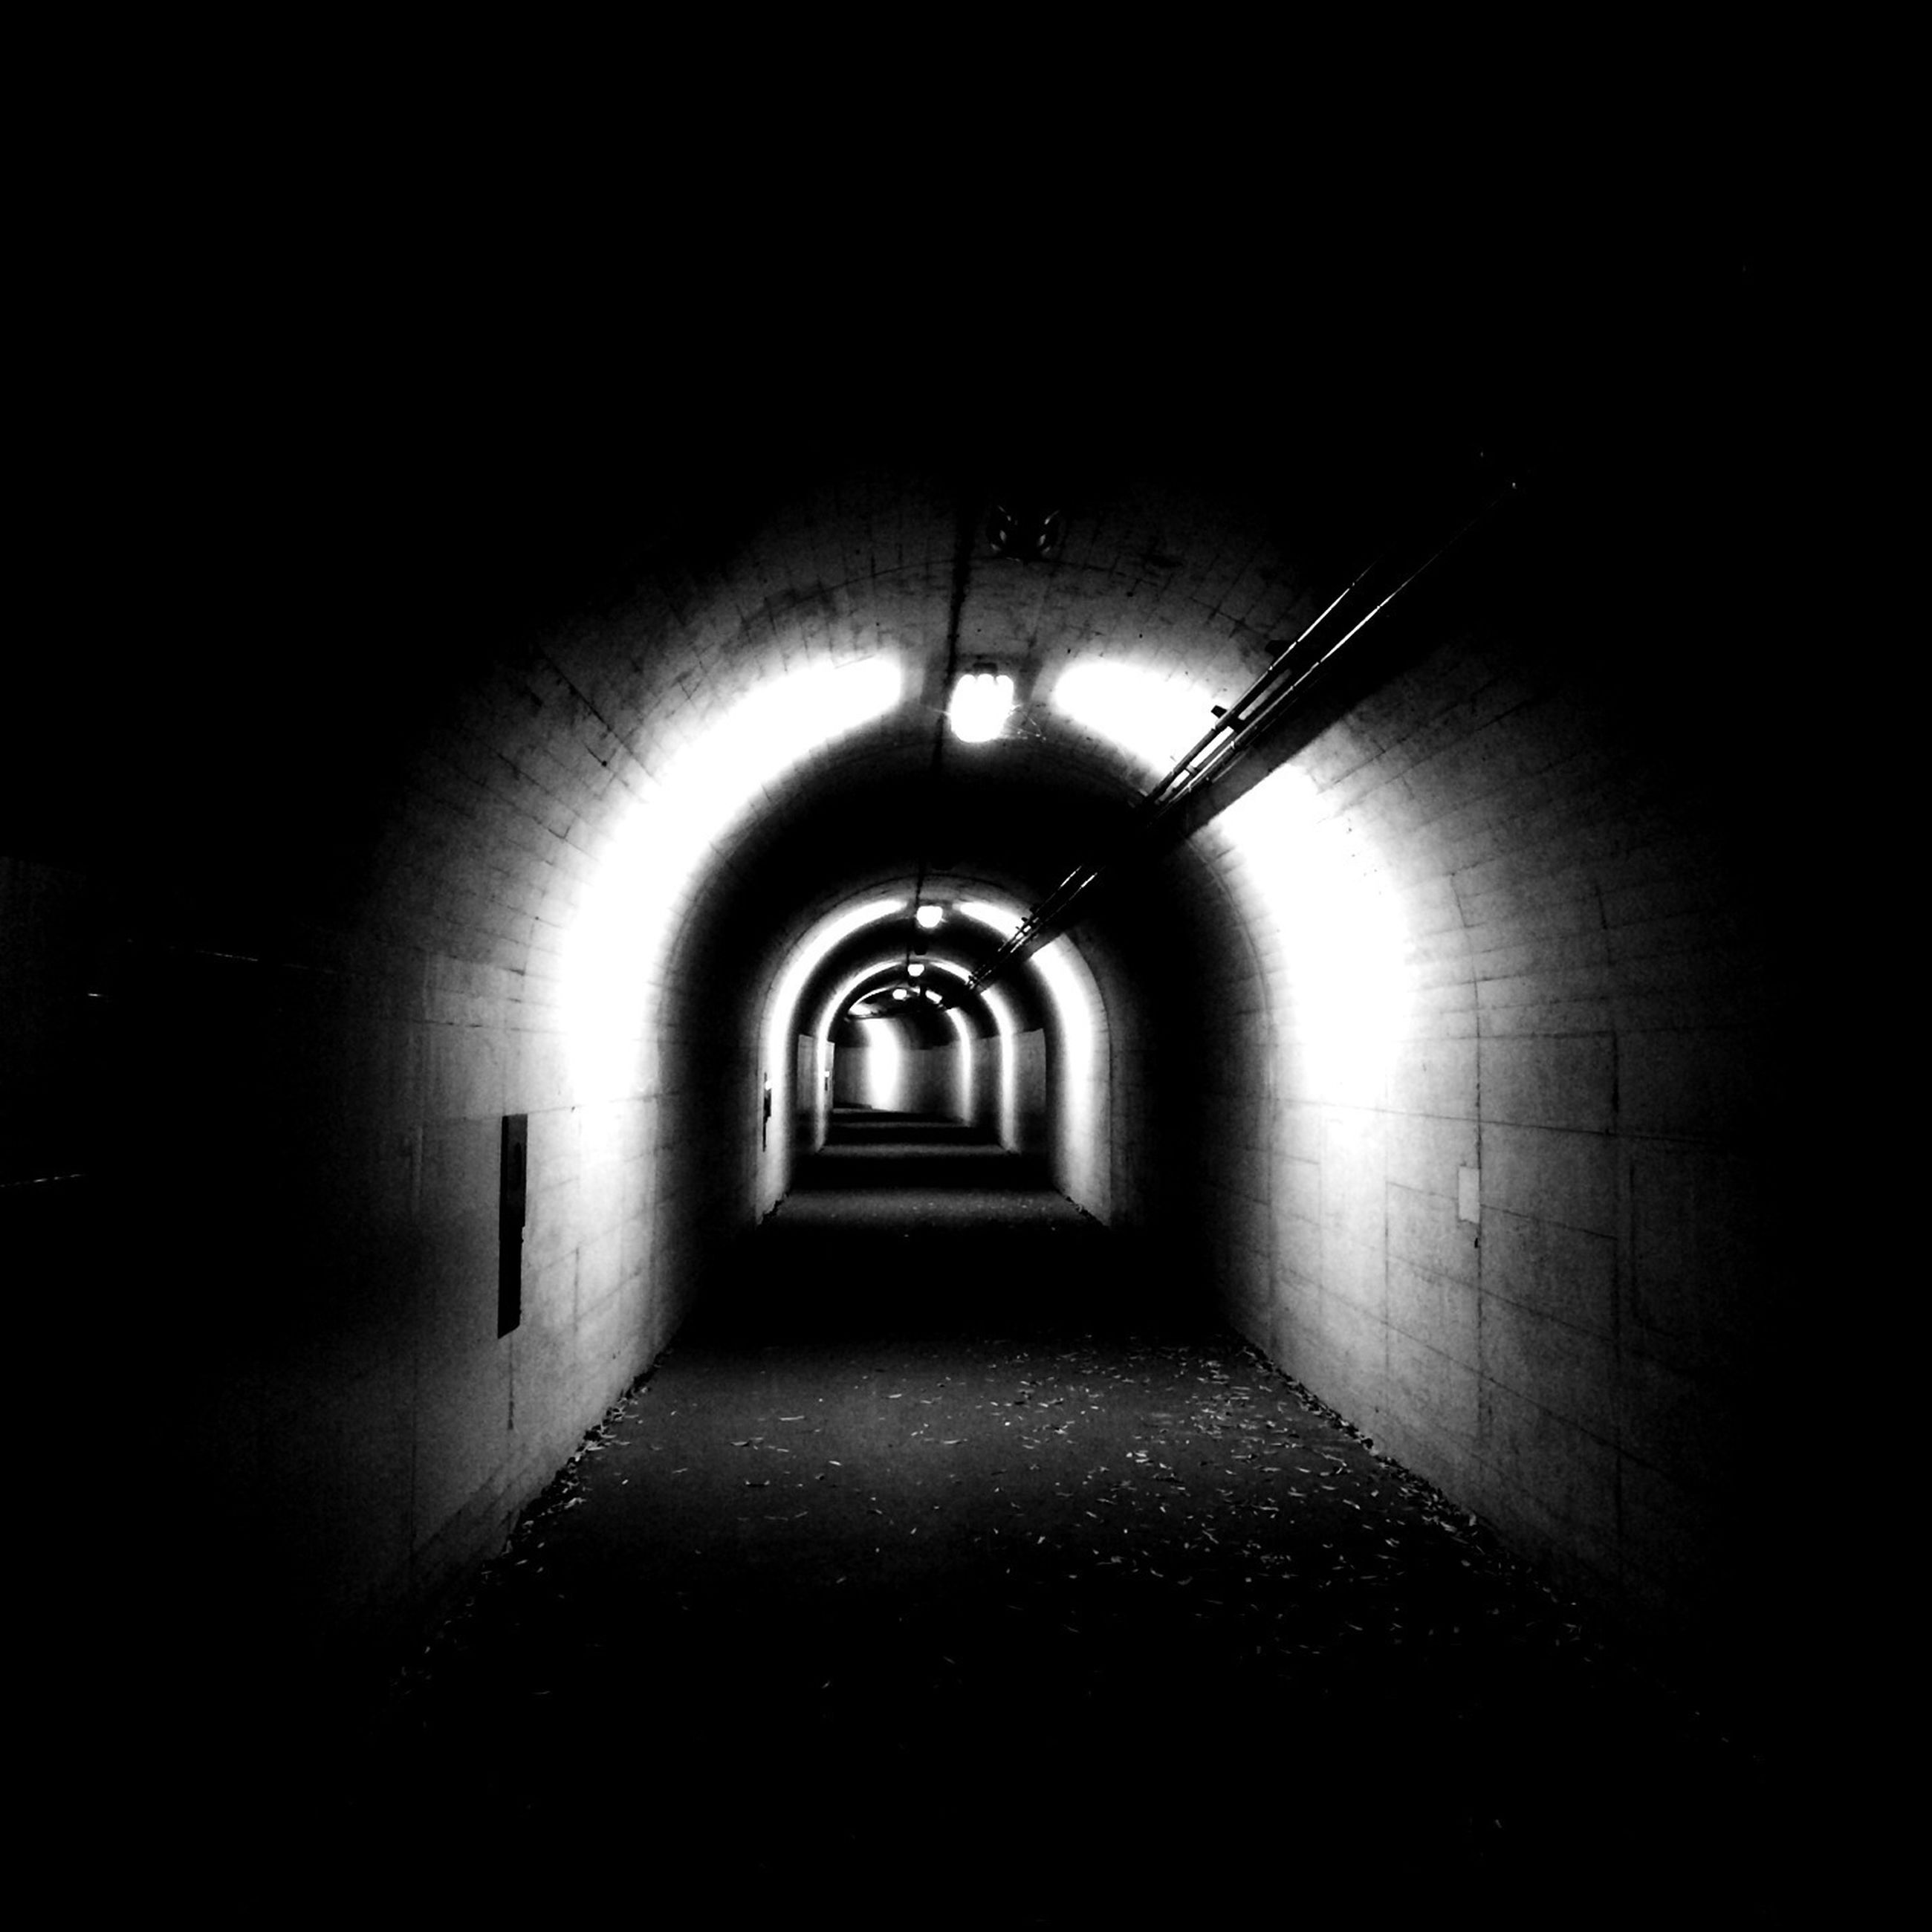 the way forward, indoors, tunnel, architecture, illuminated, diminishing perspective, built structure, corridor, arch, vanishing point, empty, wall - building feature, narrow, light at the end of the tunnel, lighting equipment, wall, long, absence, building, ceiling